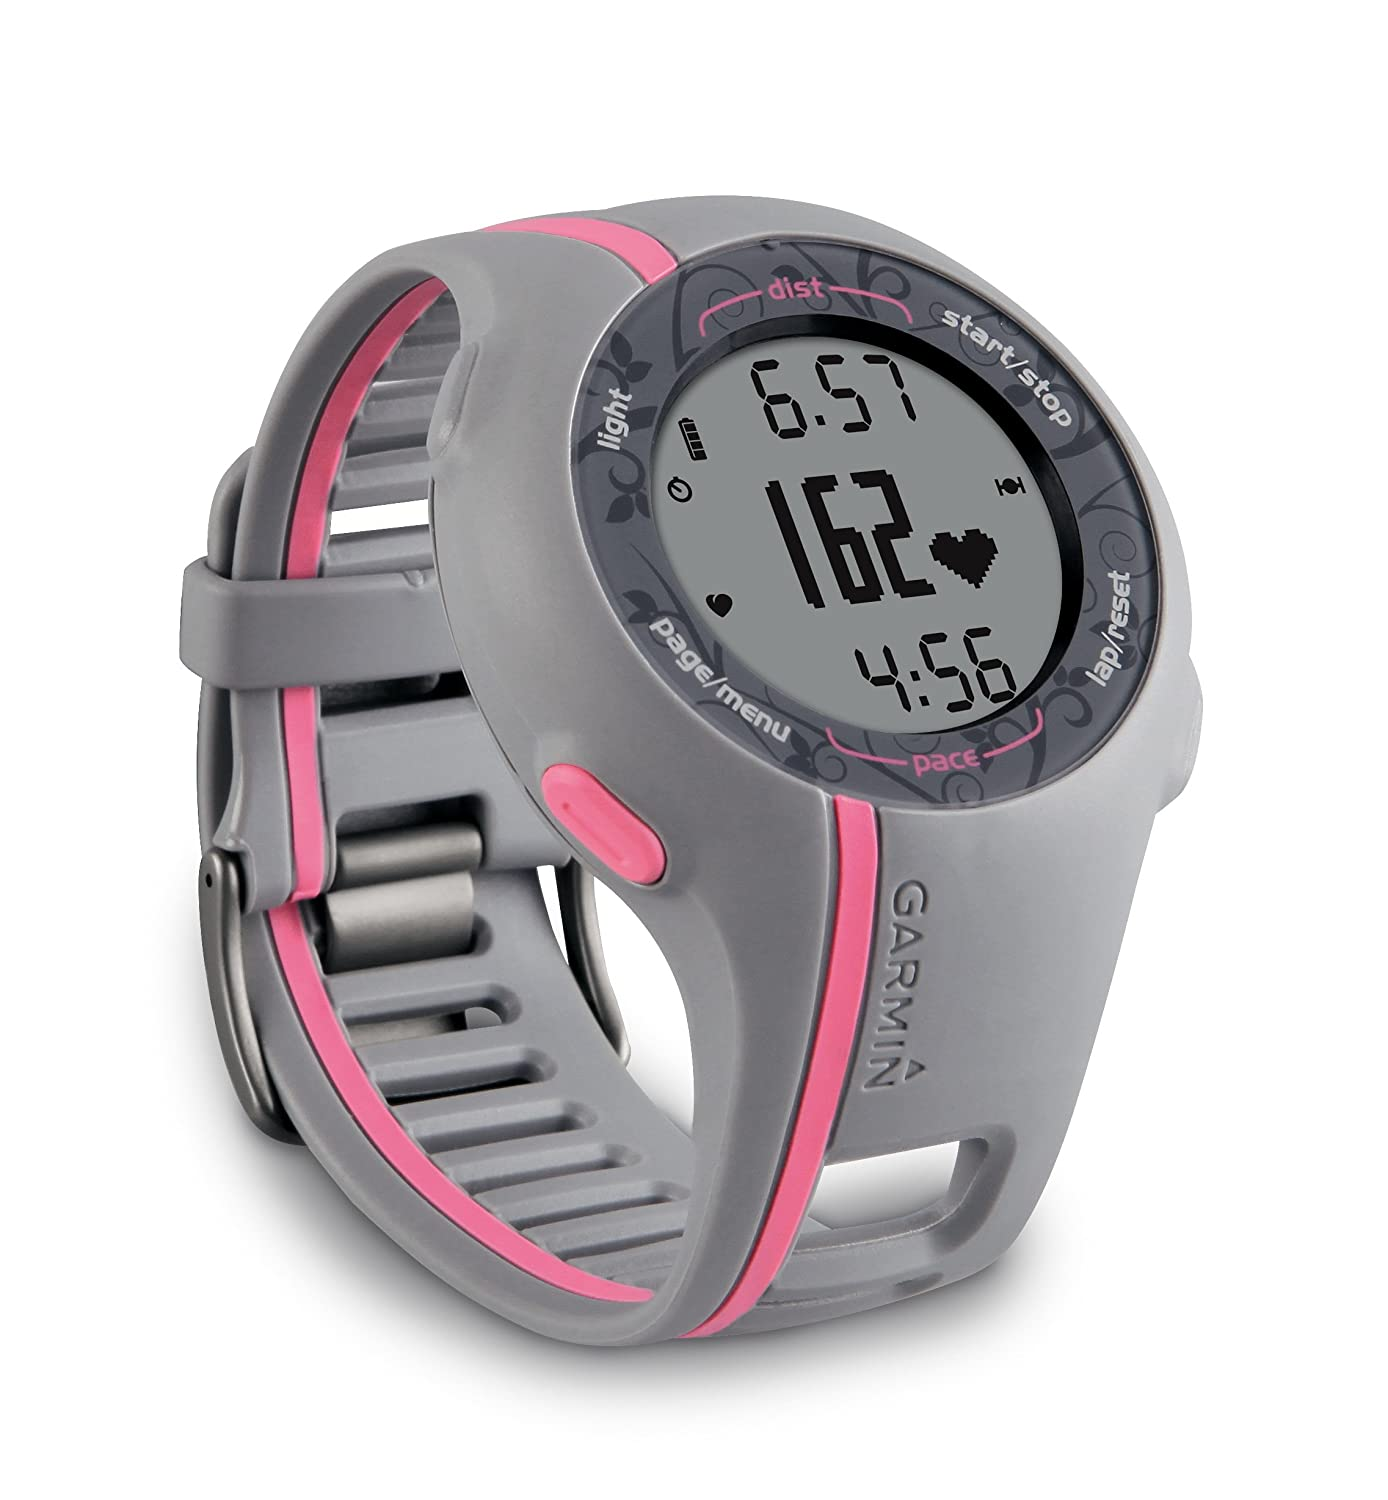 Amazon.com: Garmin Forerunner 110W GPS enabled Sports Watch with HRM (Pink)  (Discontinued by Manufacturer): Home Audio & Theater